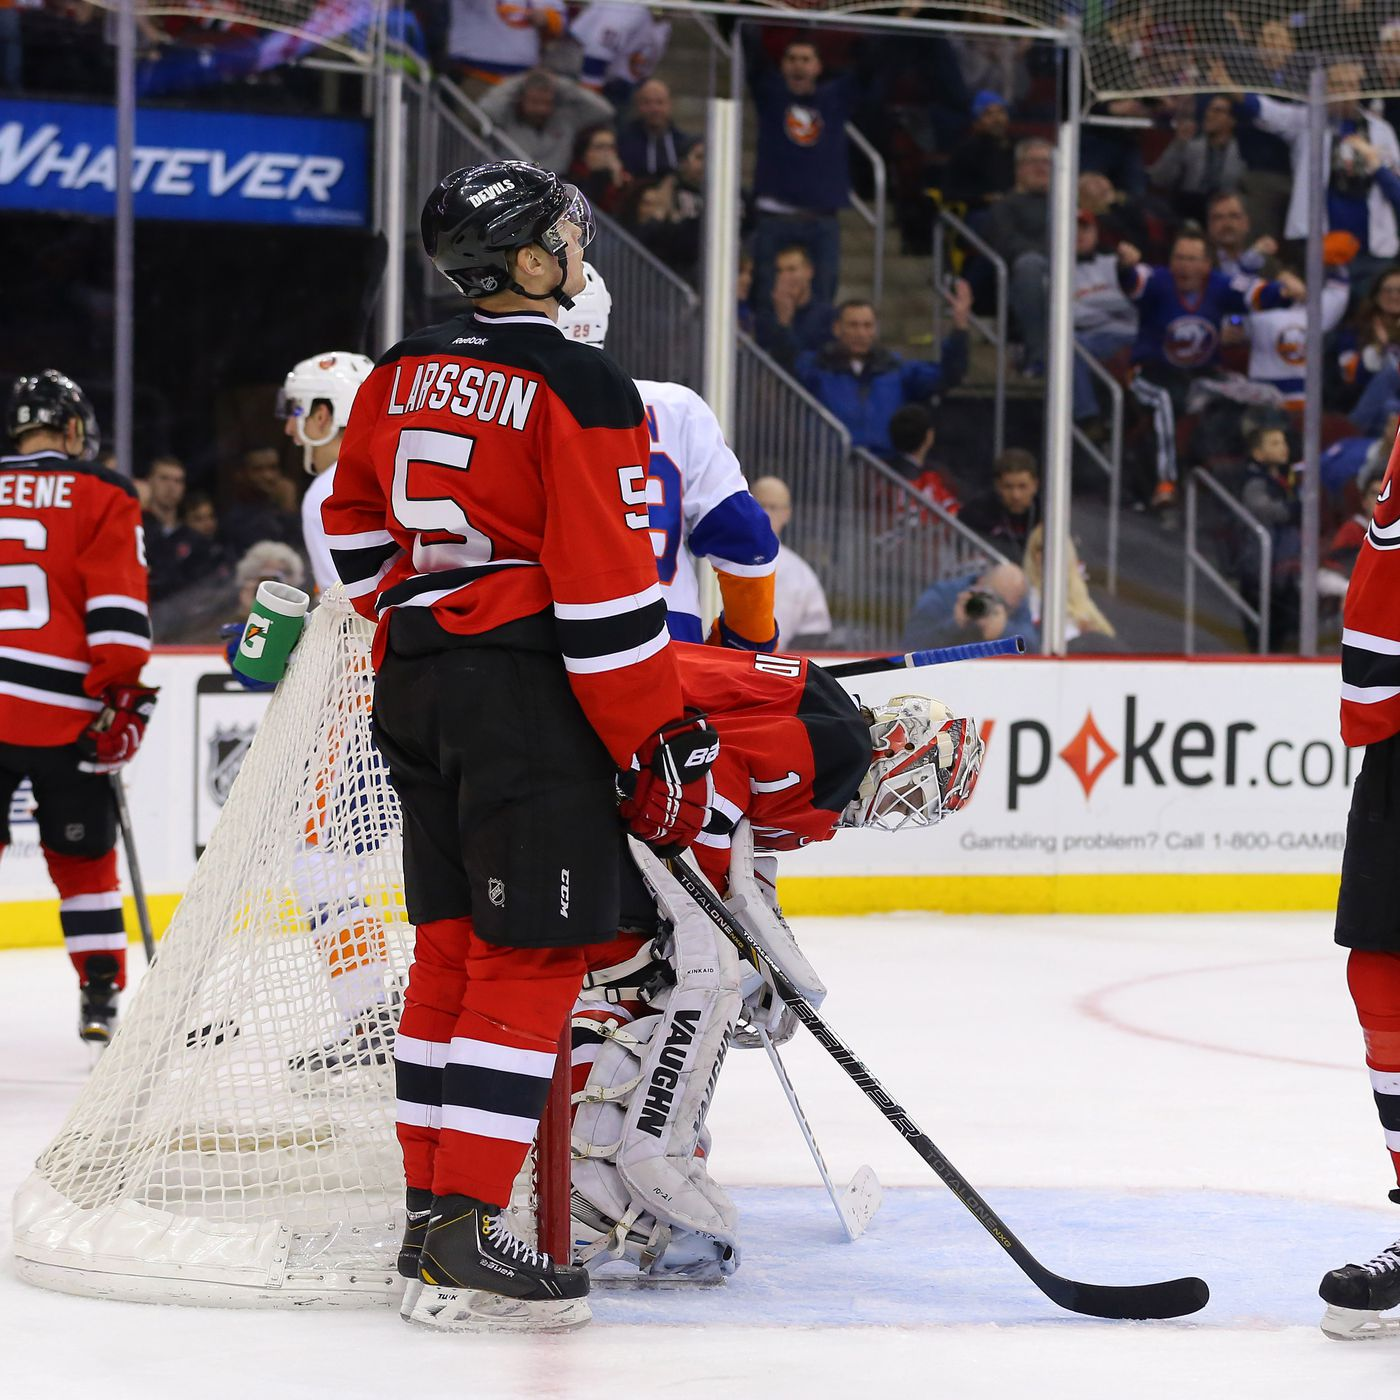 5a7368cf7 New Jersey Devils vs. New York Islanders  Game Preview  72 - All About The  Jersey